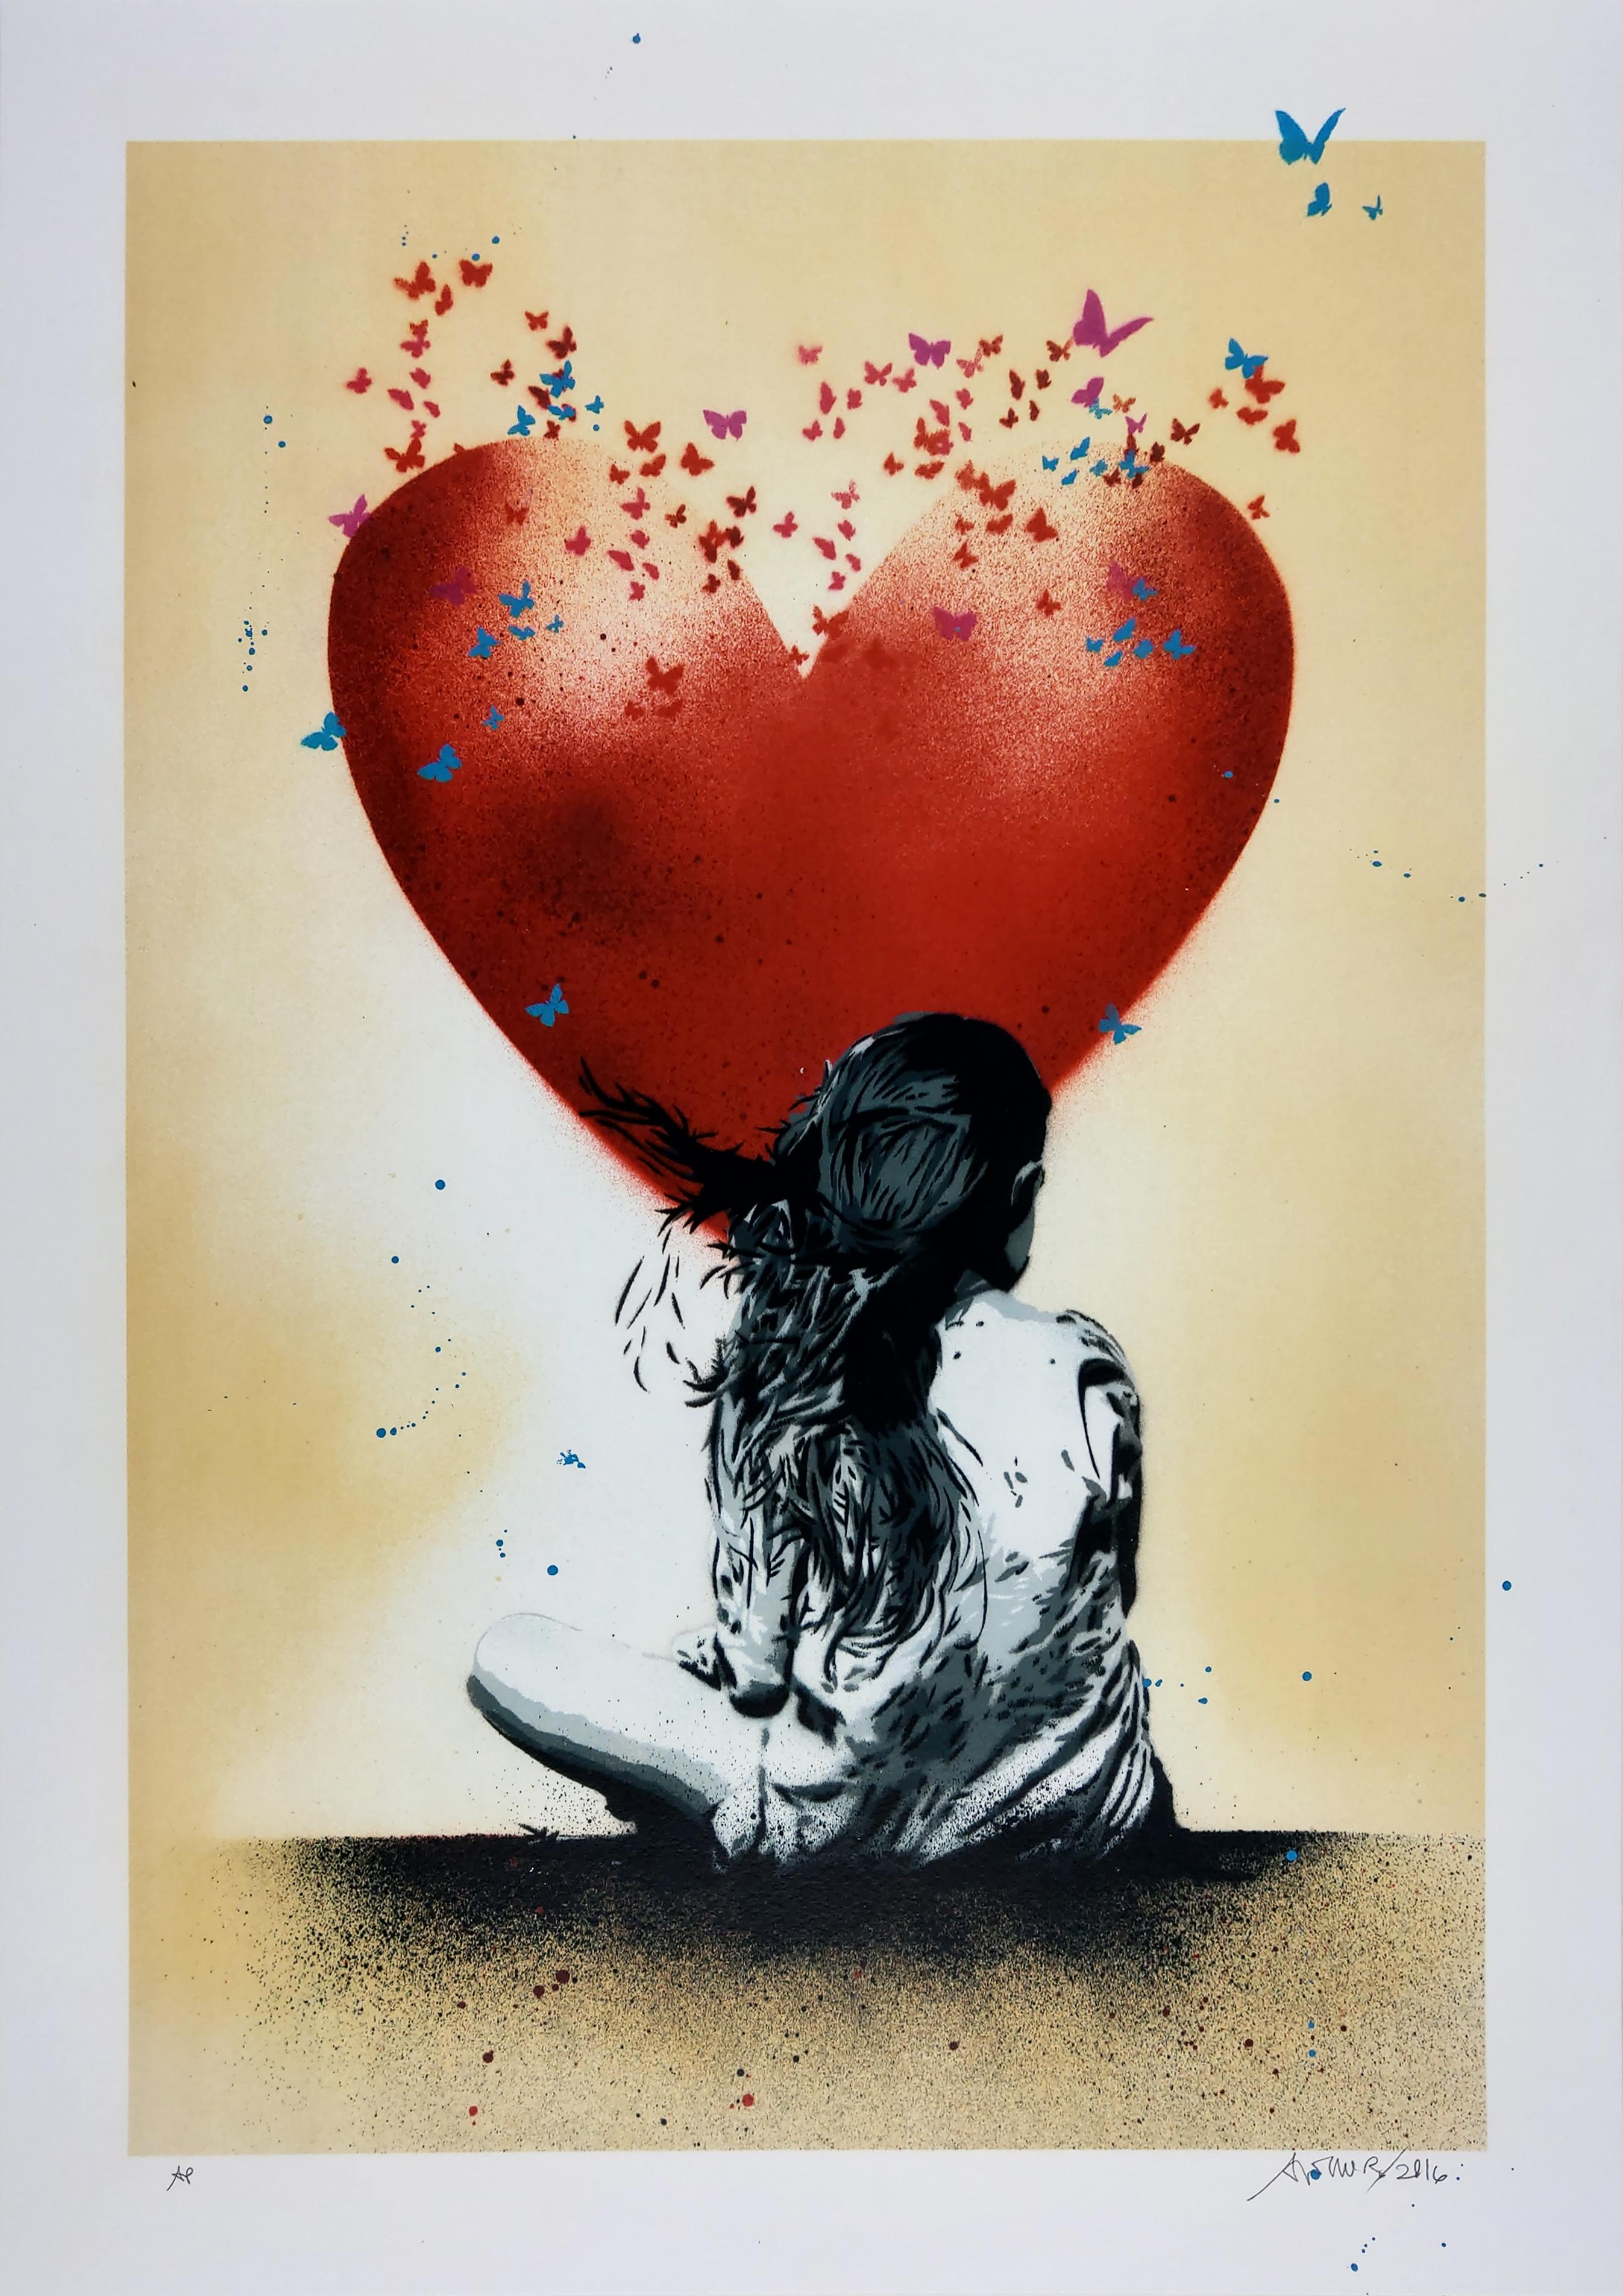 Dream, Red Heart on Gold, by Alessio-B, Contemporary Street Art Print